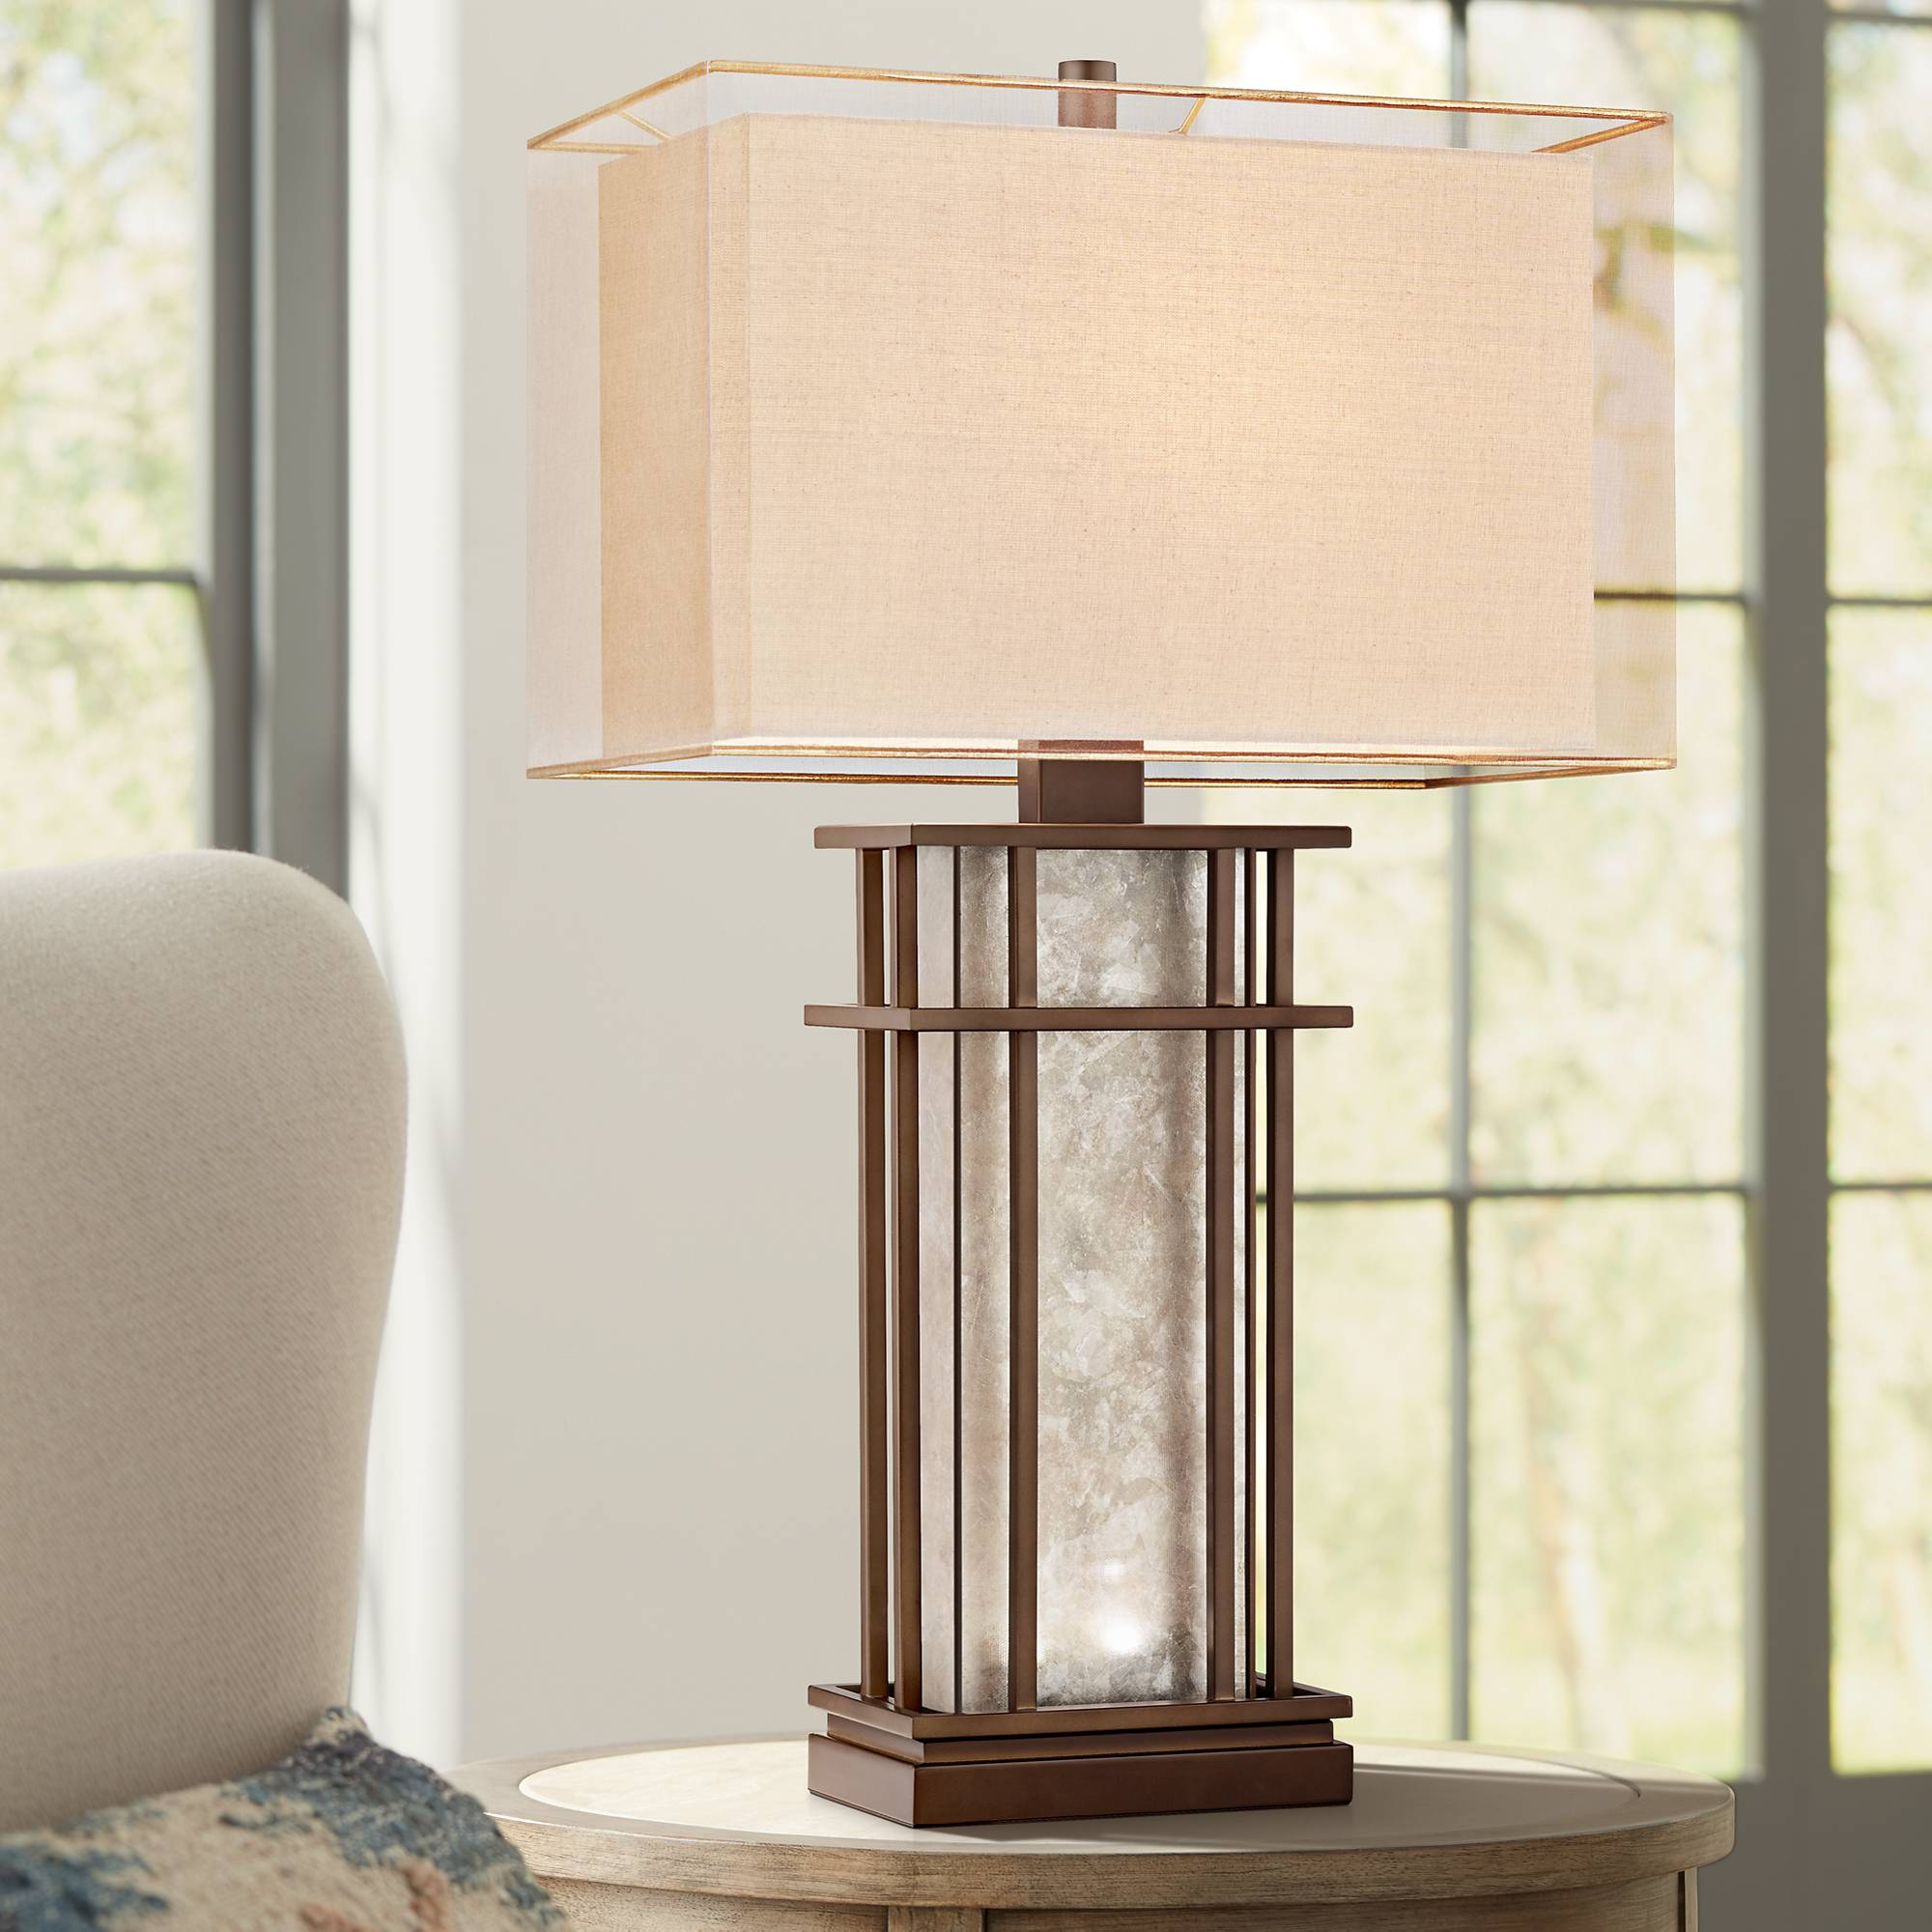 Farmhouse Table Lamp with Nightlight LED Rustic Bronze Mica for ...